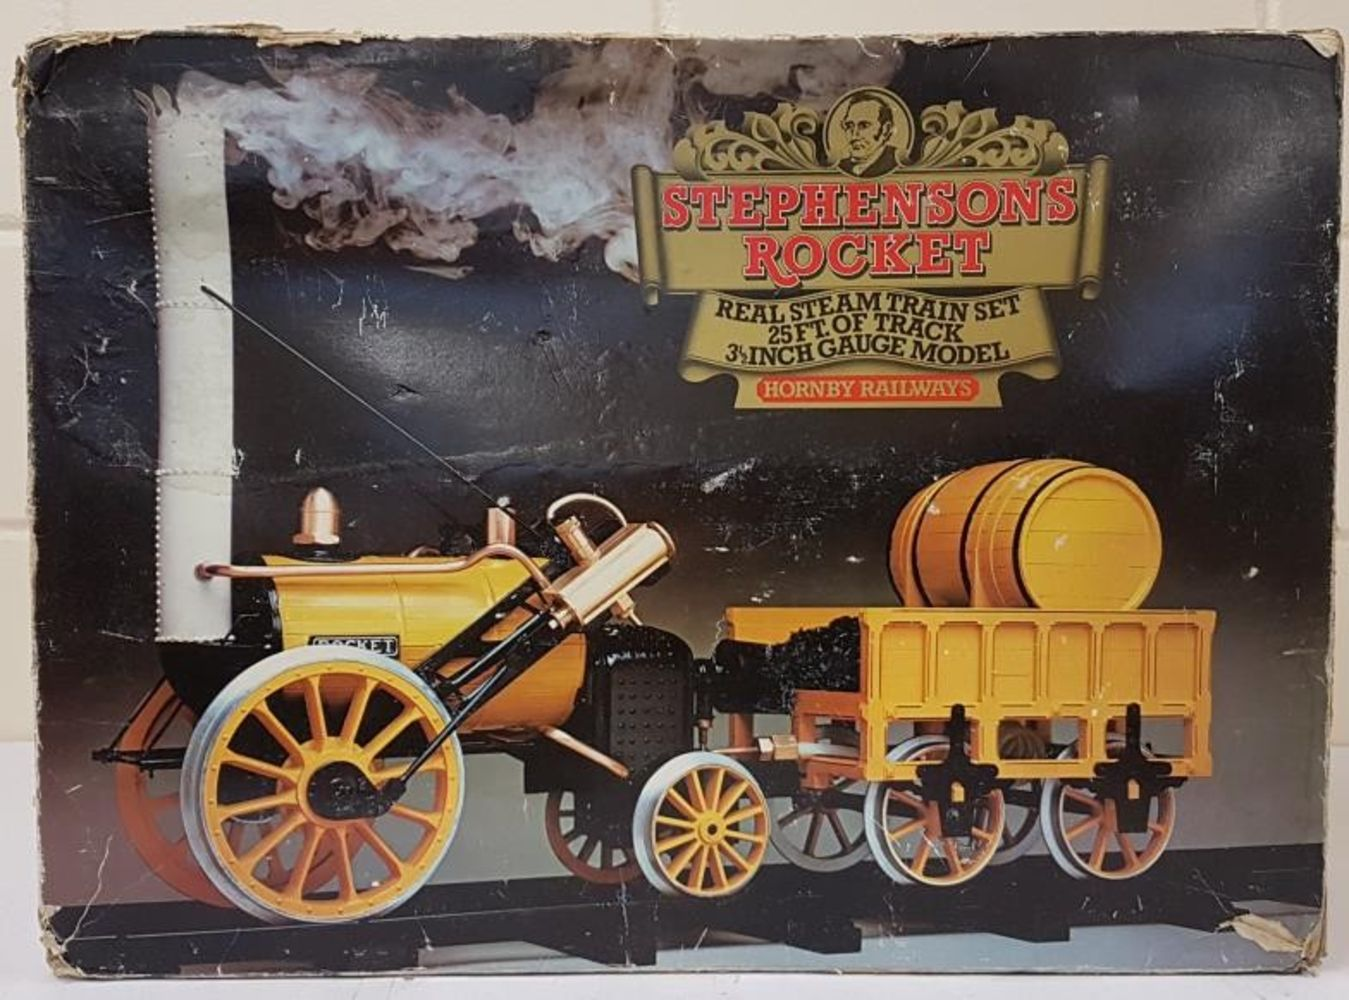 Exceptional Collection of Irish Railwayana and Model Railway Collectables - Webb & Thompson Large Staff Instruments etc.